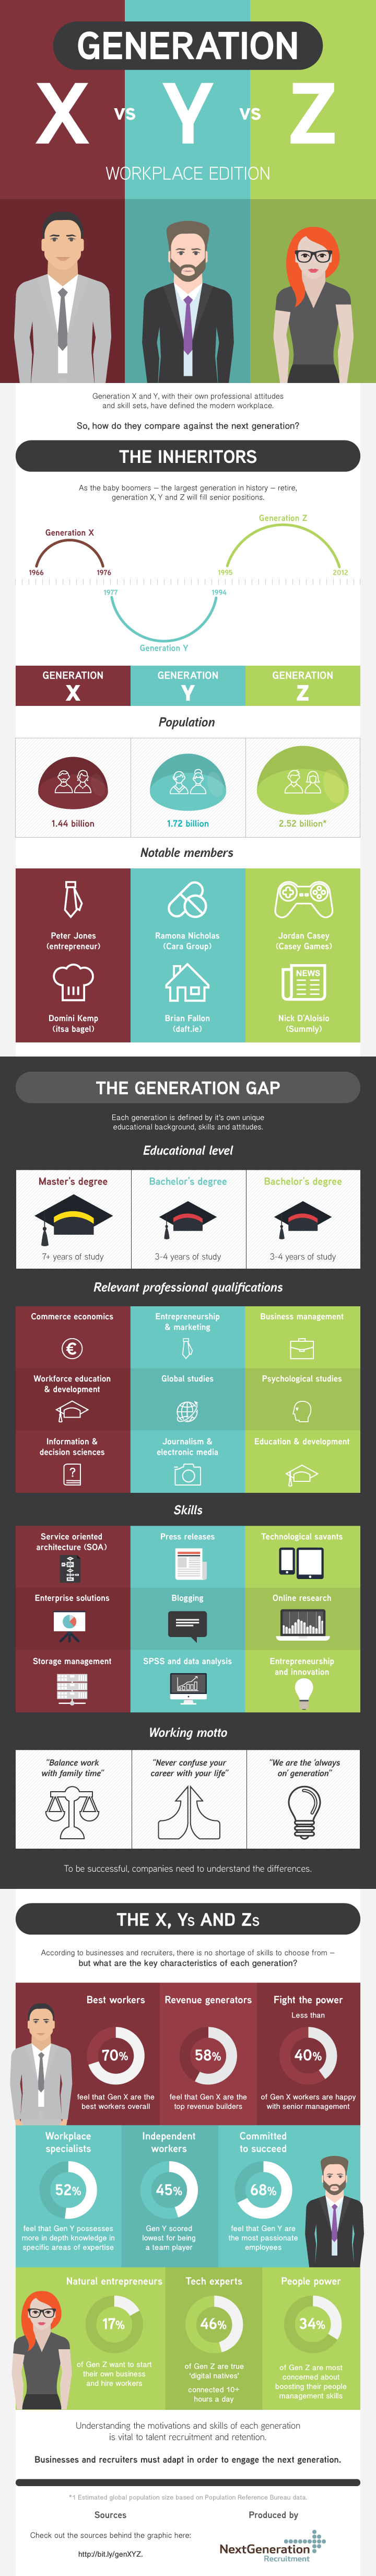 Infographic: Generations X, Y & Z In The Workplace